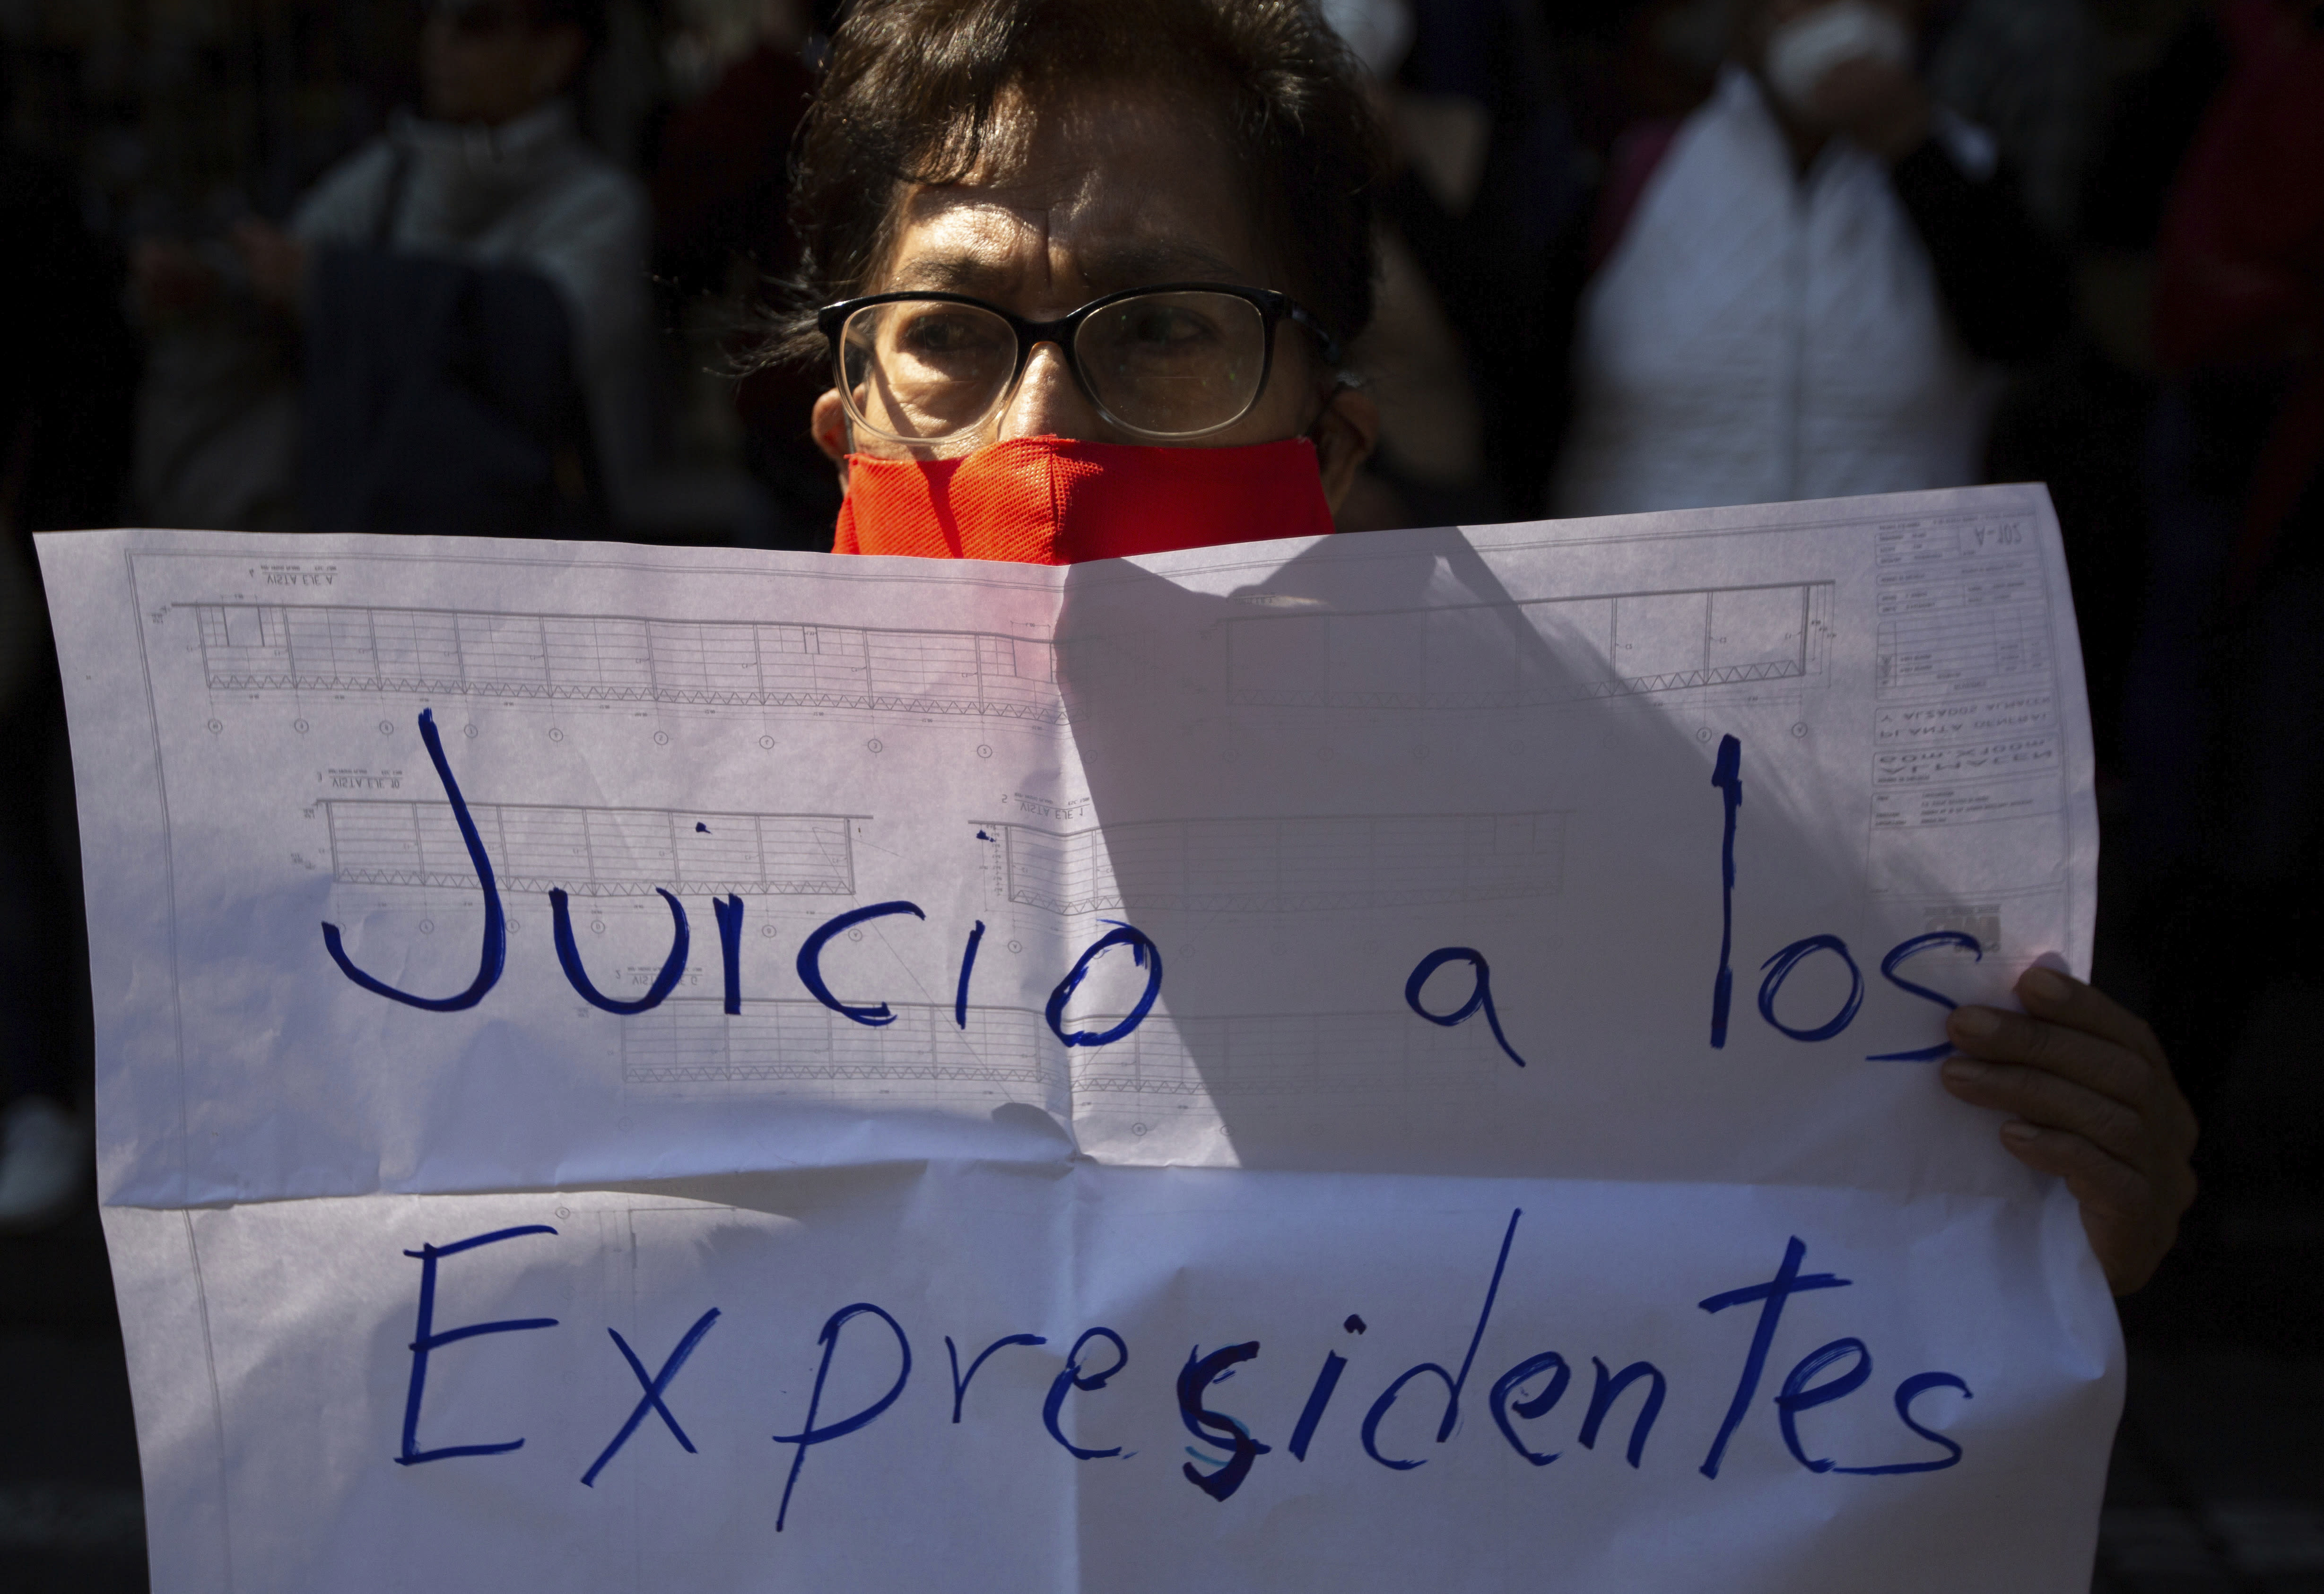 """A supporter of Mexico's President Andres Manuel Lopez Obrador holds the Spanish message: """"Trial of former presidents"""" during a demonstration outside the Supreme Court in Mexico City, Thursday, Oct. 1, 2020. The court is scheduled to decide whether the president's proposal to hold a popular vote to decide whether or not to pursue former presidents on corruption charges stands up to scrutiny. (AP Photo/Fernando Llano)"""